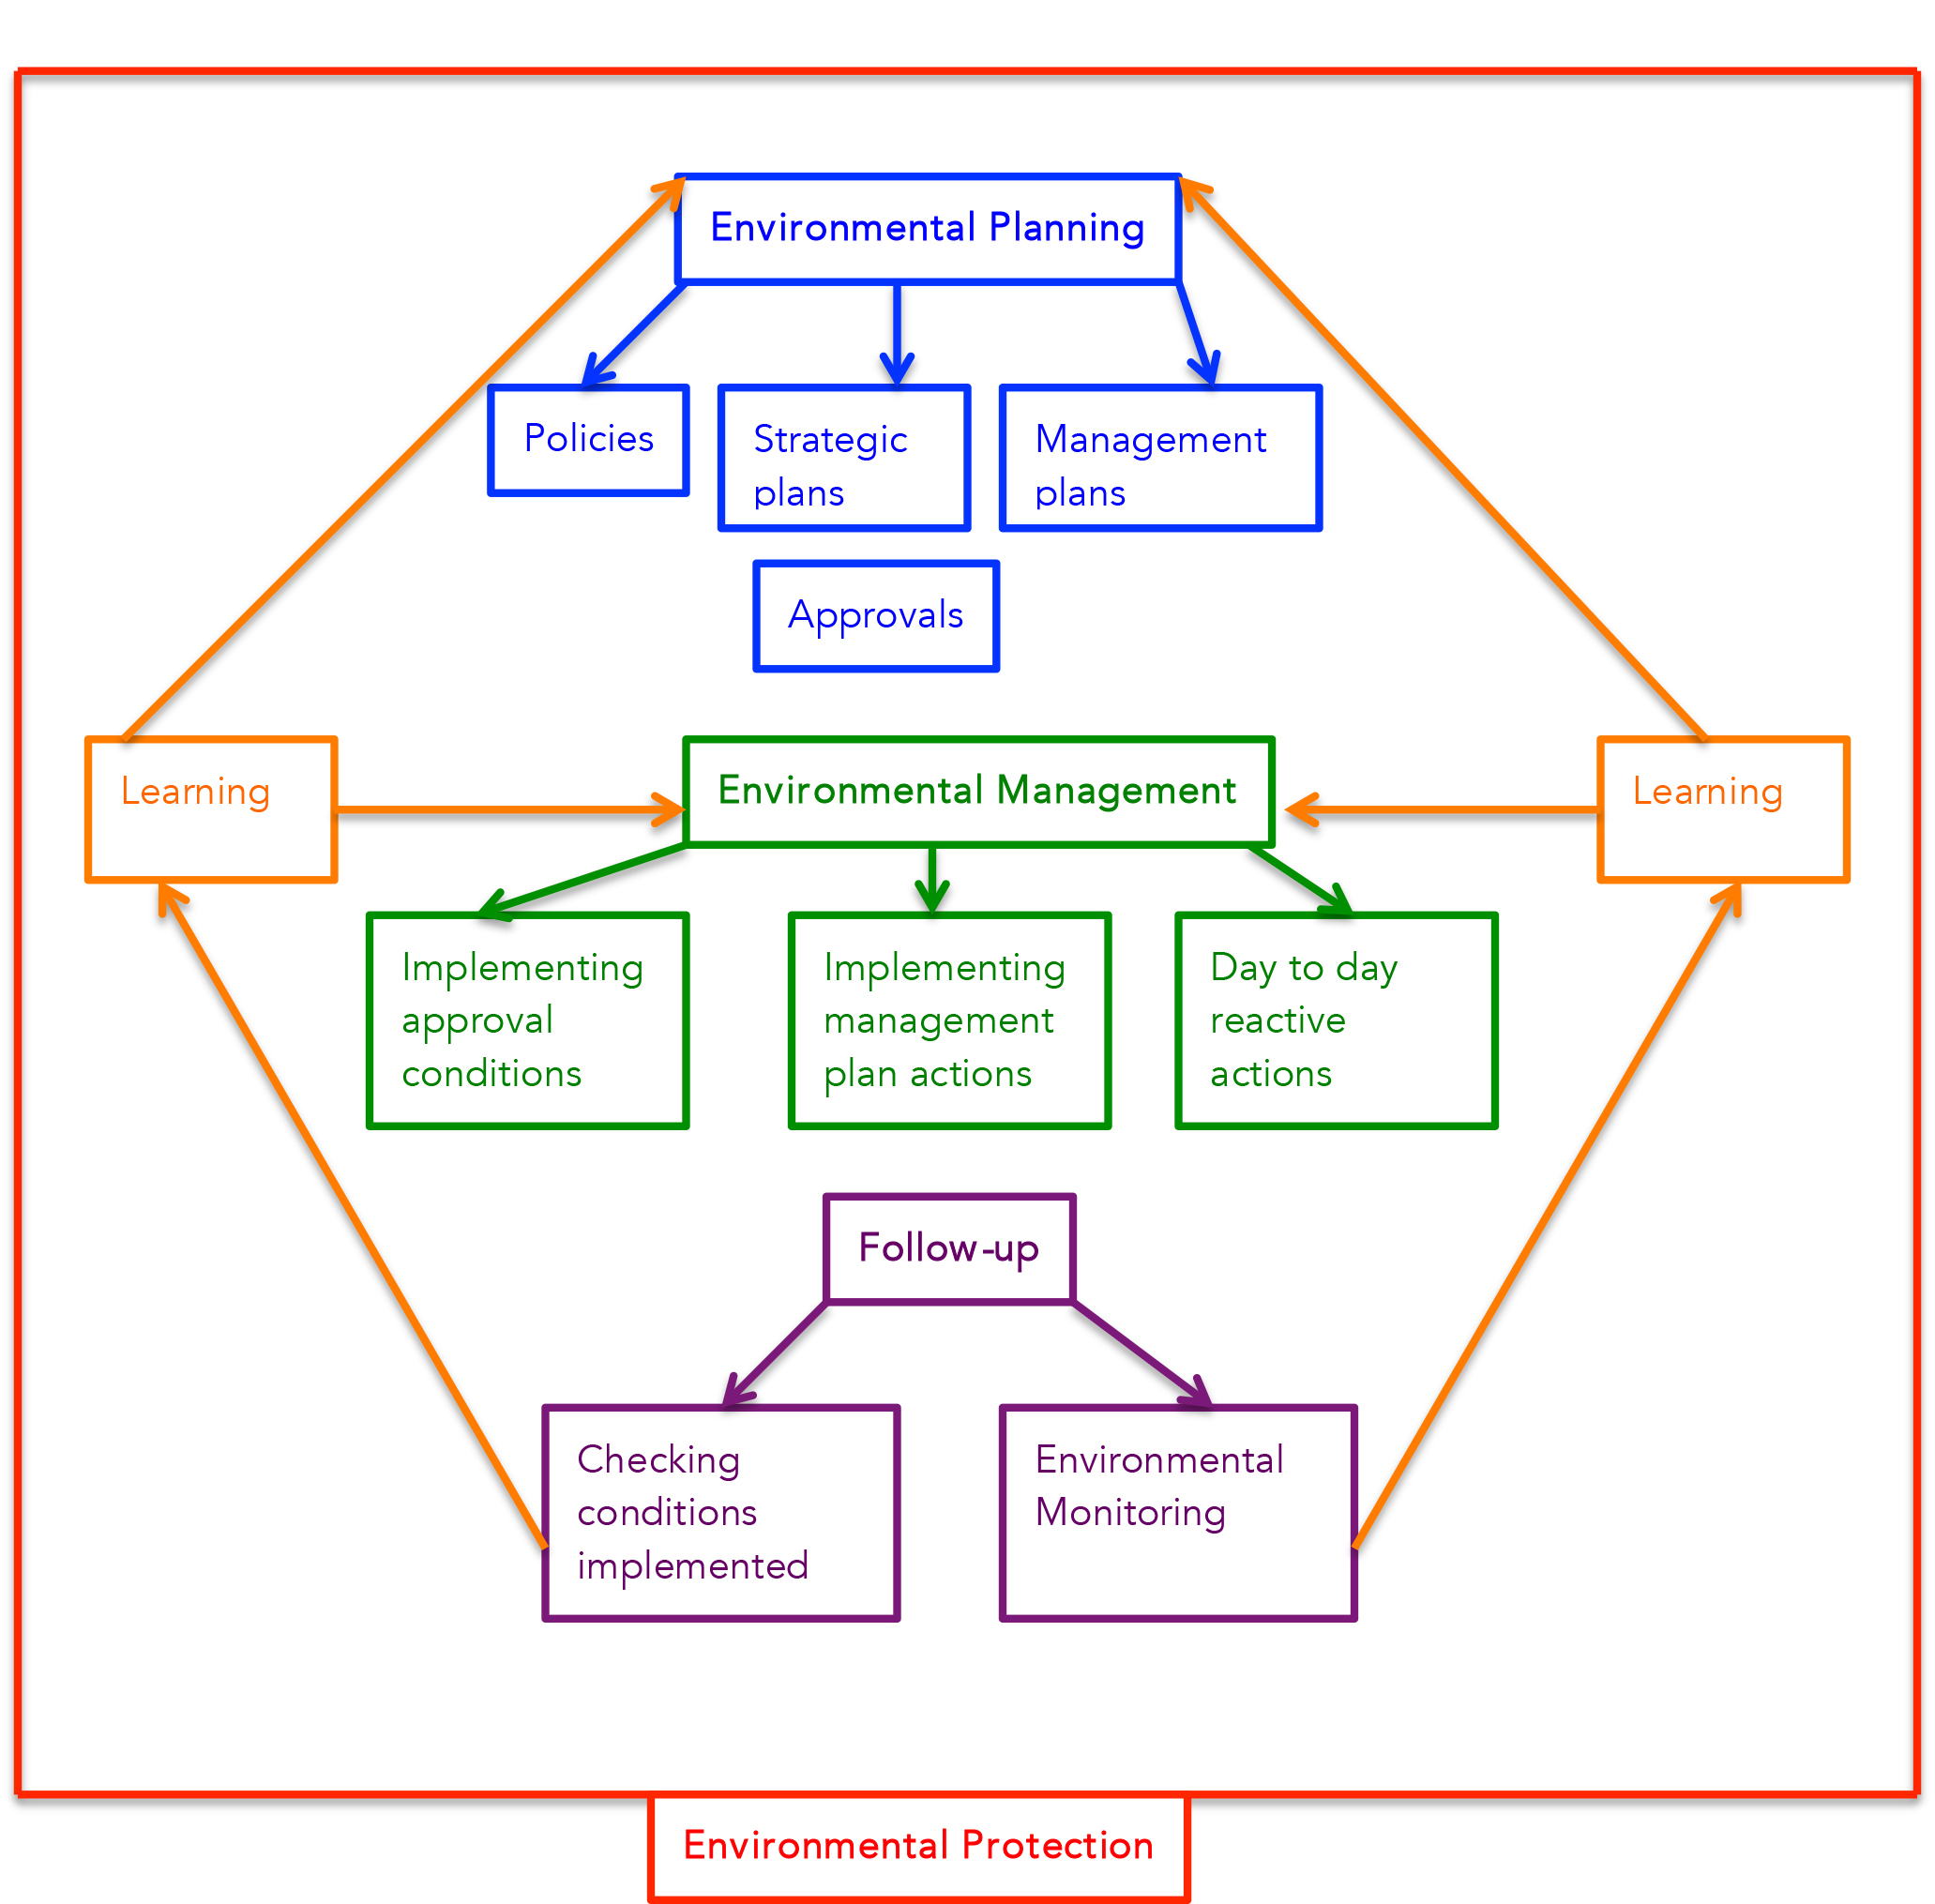 Figure 1:The relationships between environmental protection, planning, management and follow-up